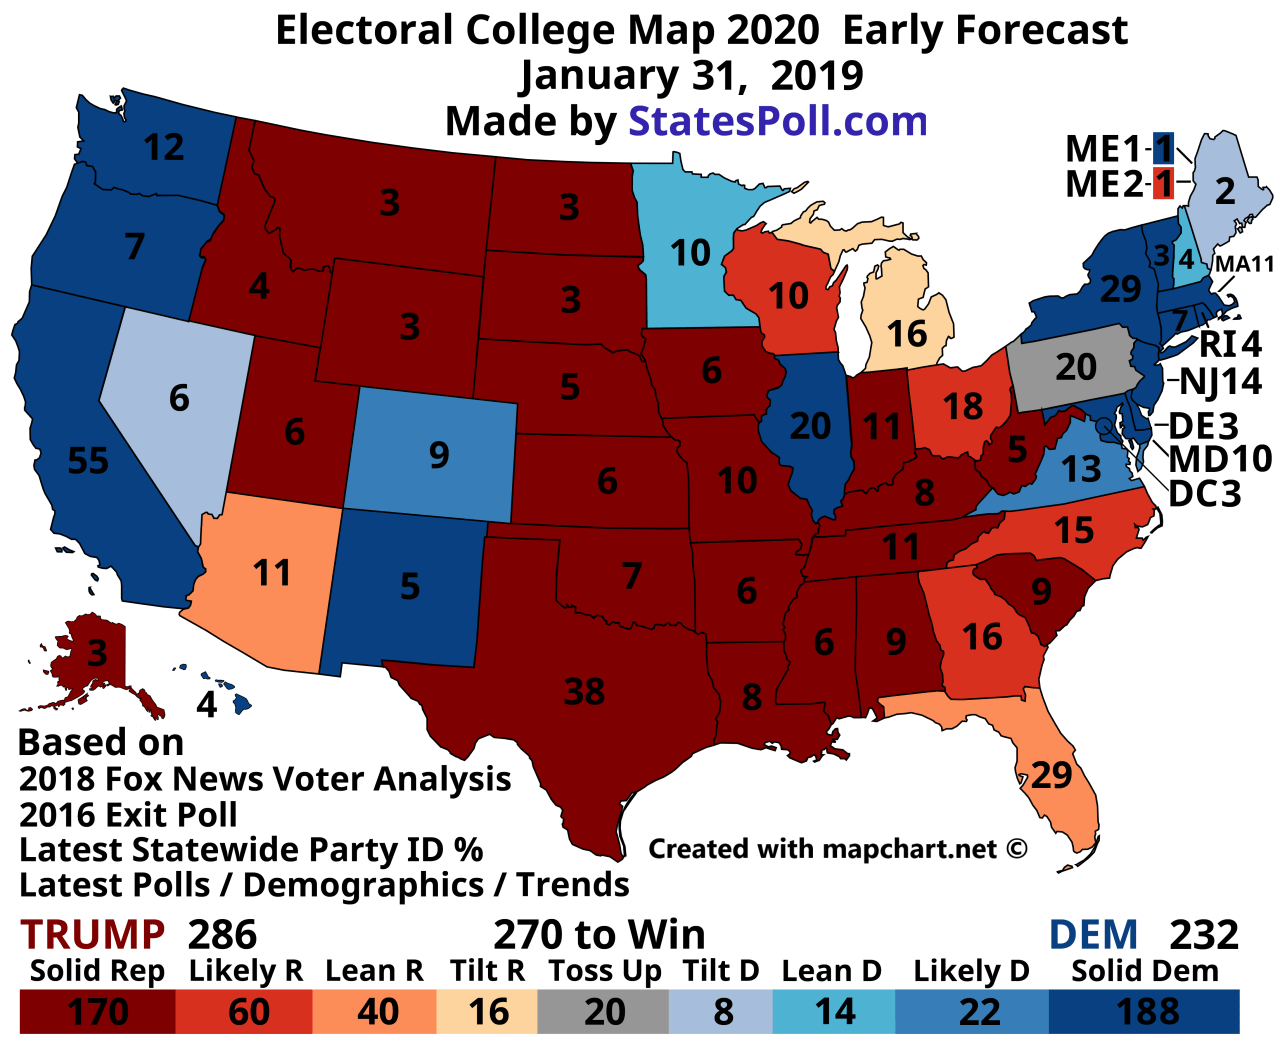 Presidential Election Electoral College Map